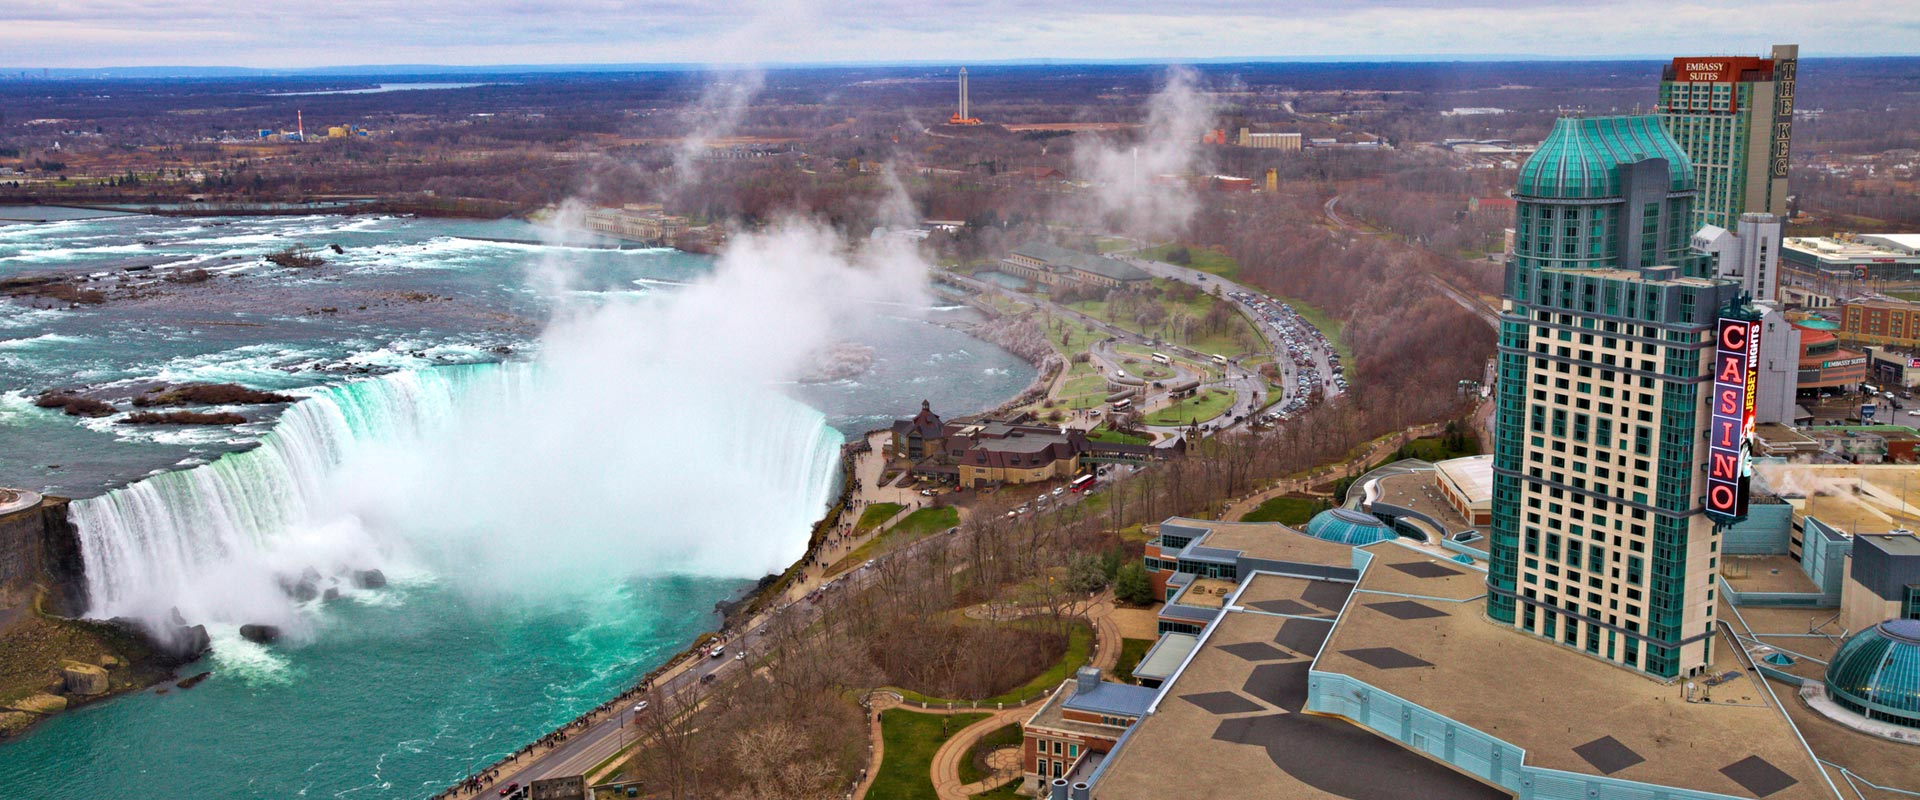 Casinos of Niagara Falls – Open 24 Hours A Day